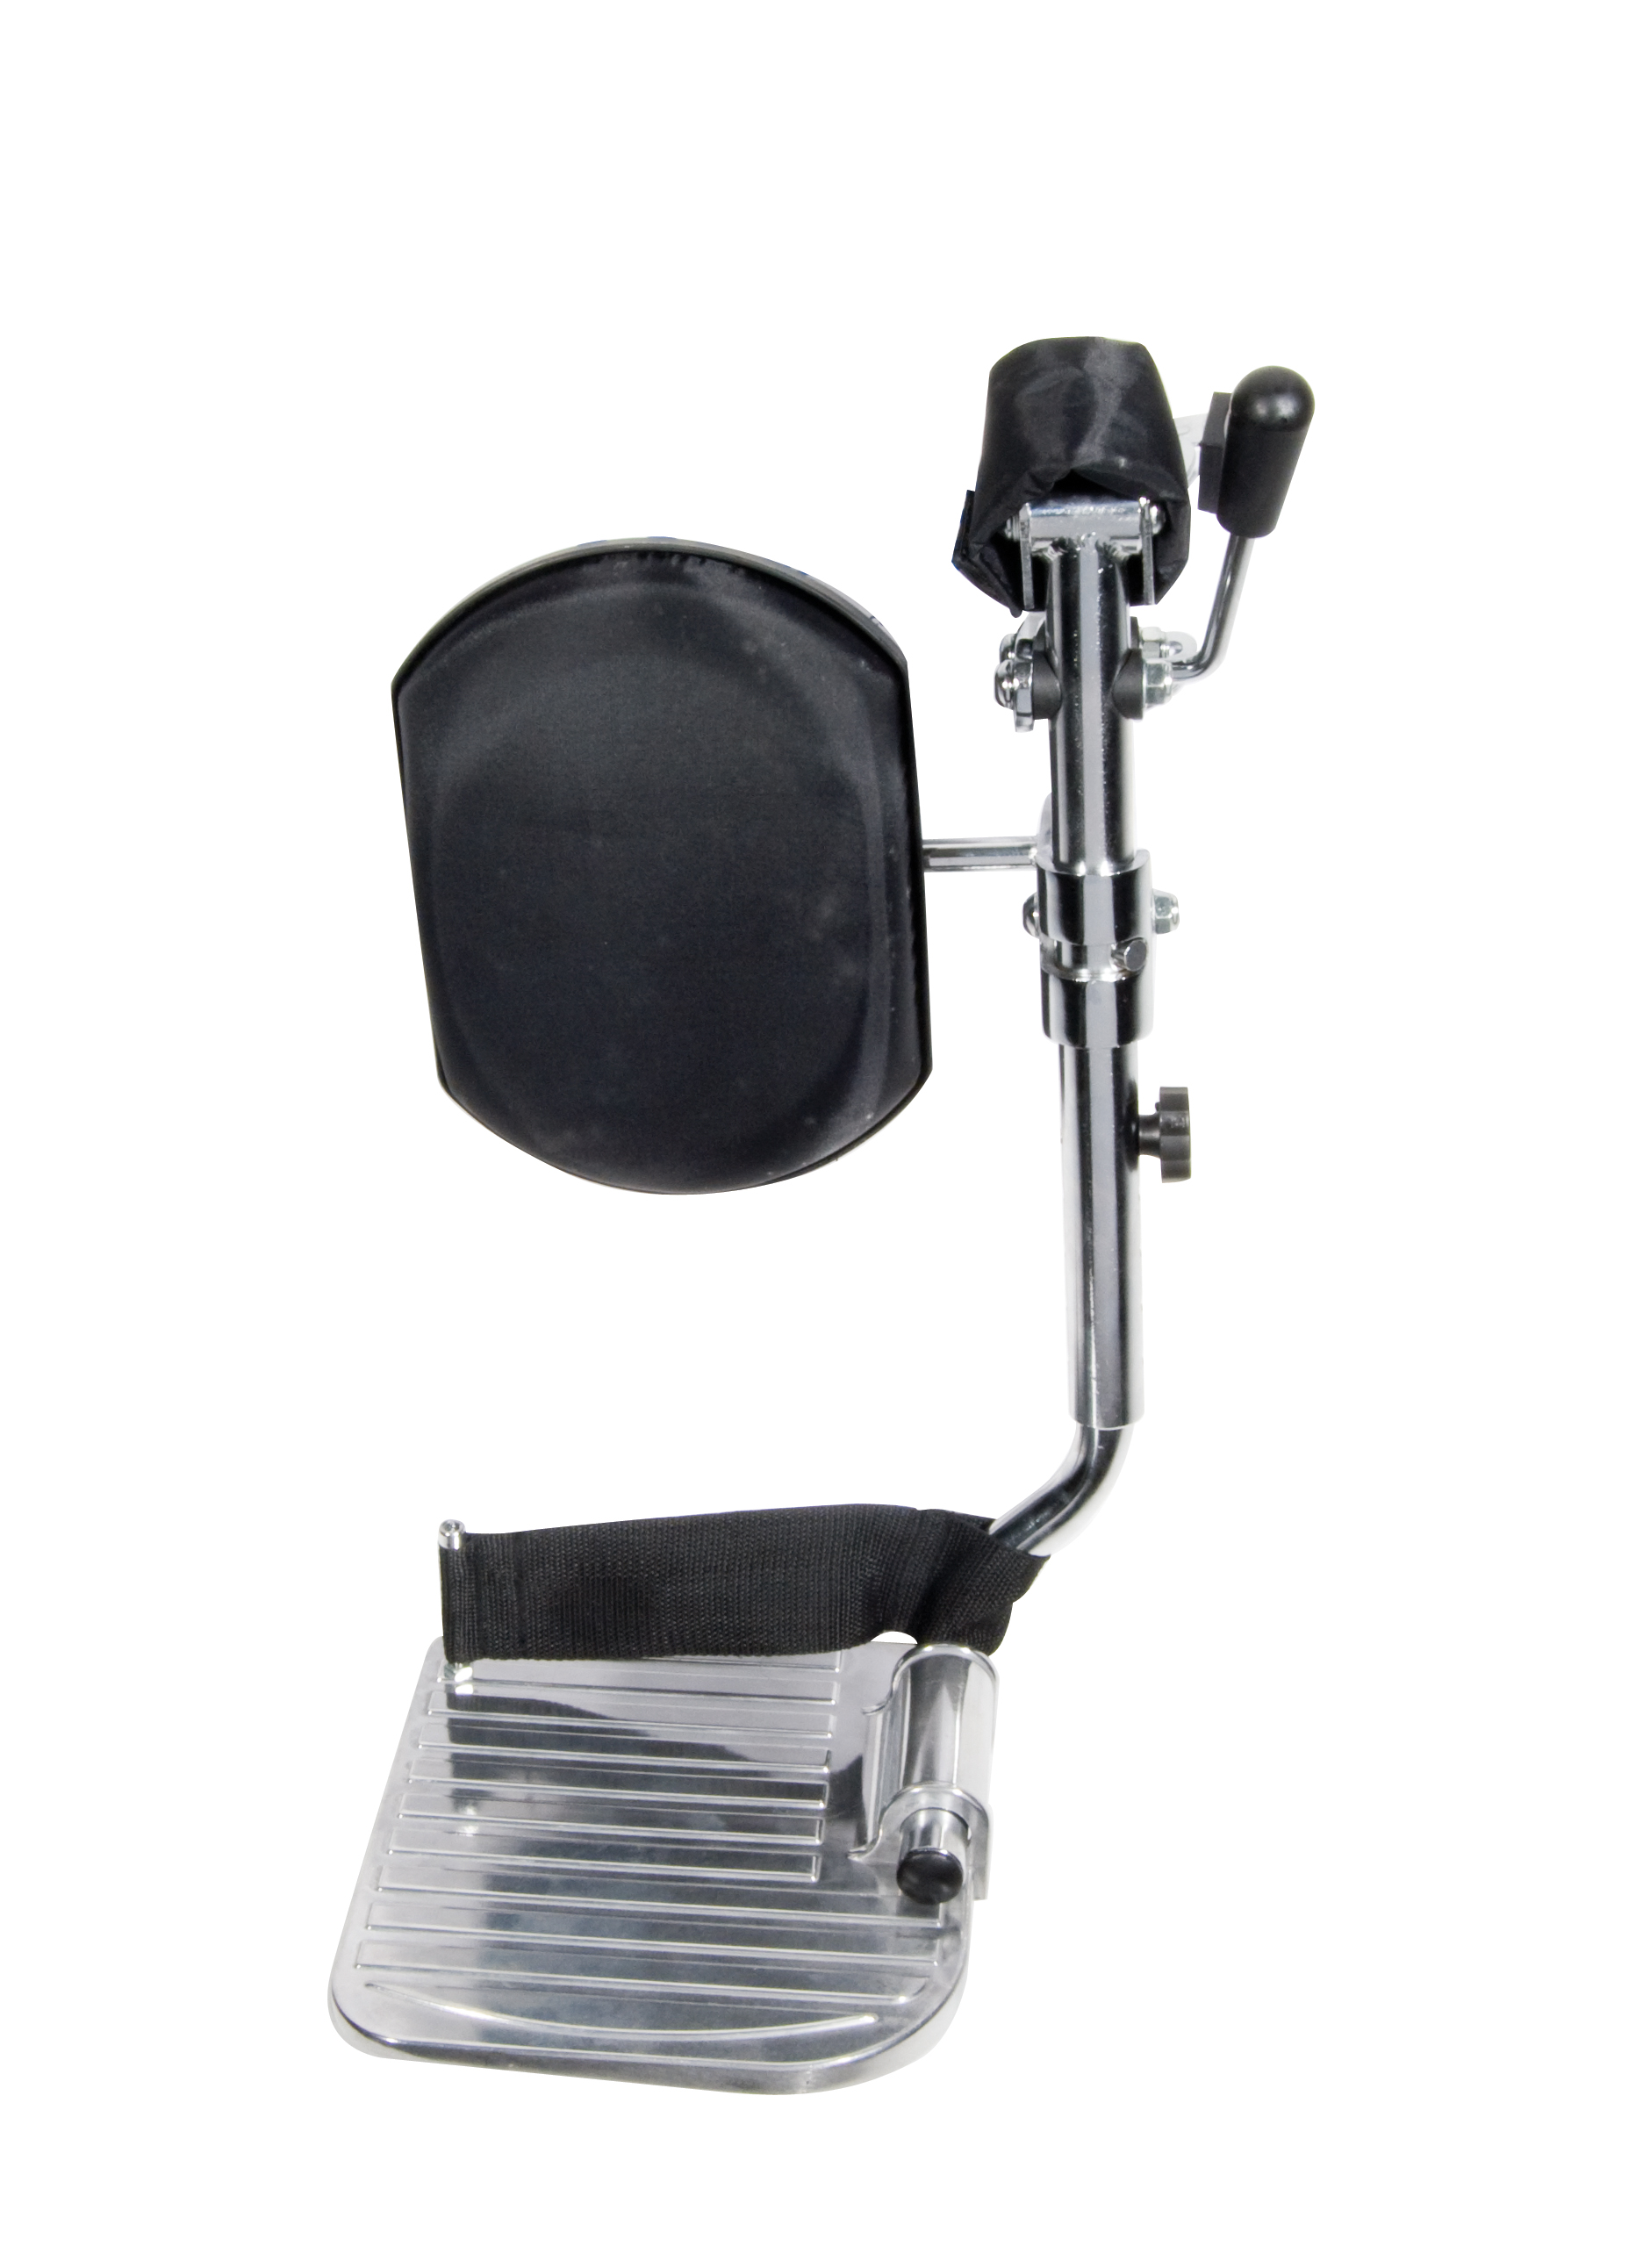 Drive Elevating Front Rigging for Sentra Heavy Duty Wheelchair- Elevating Leg rest